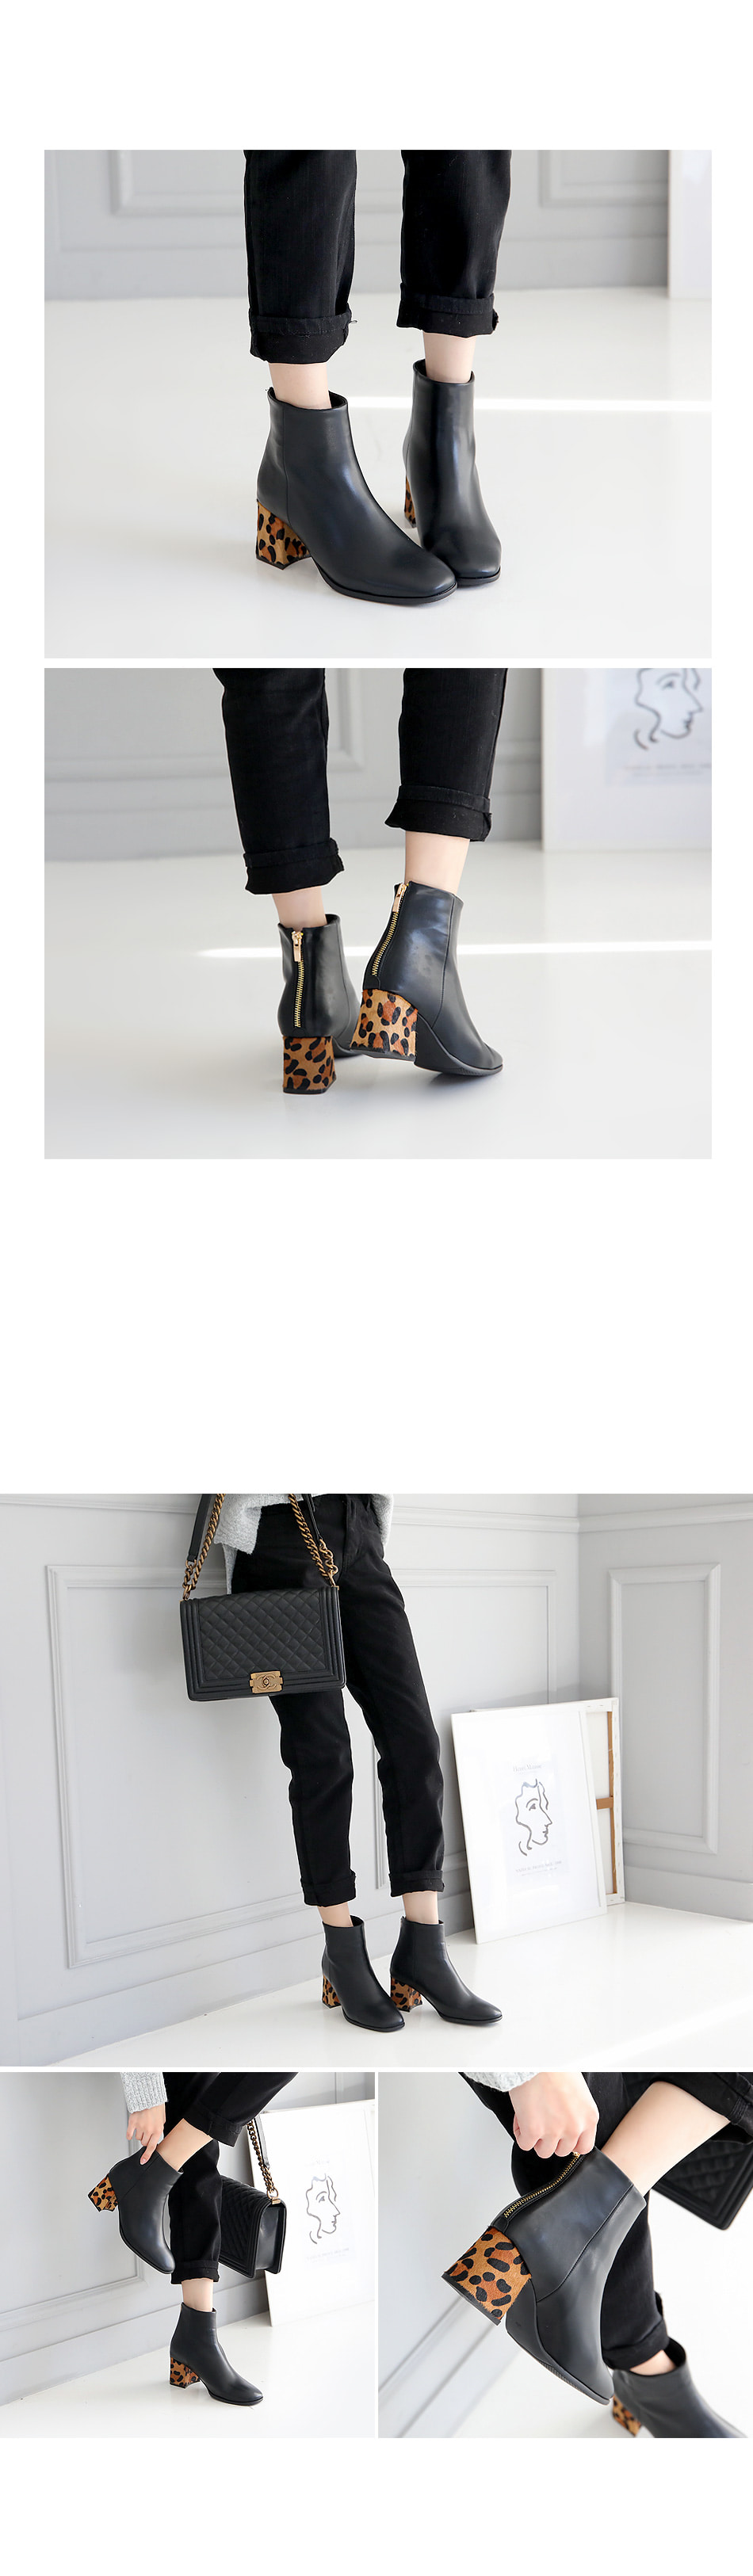 Horens Ankle Boots 6.5cm